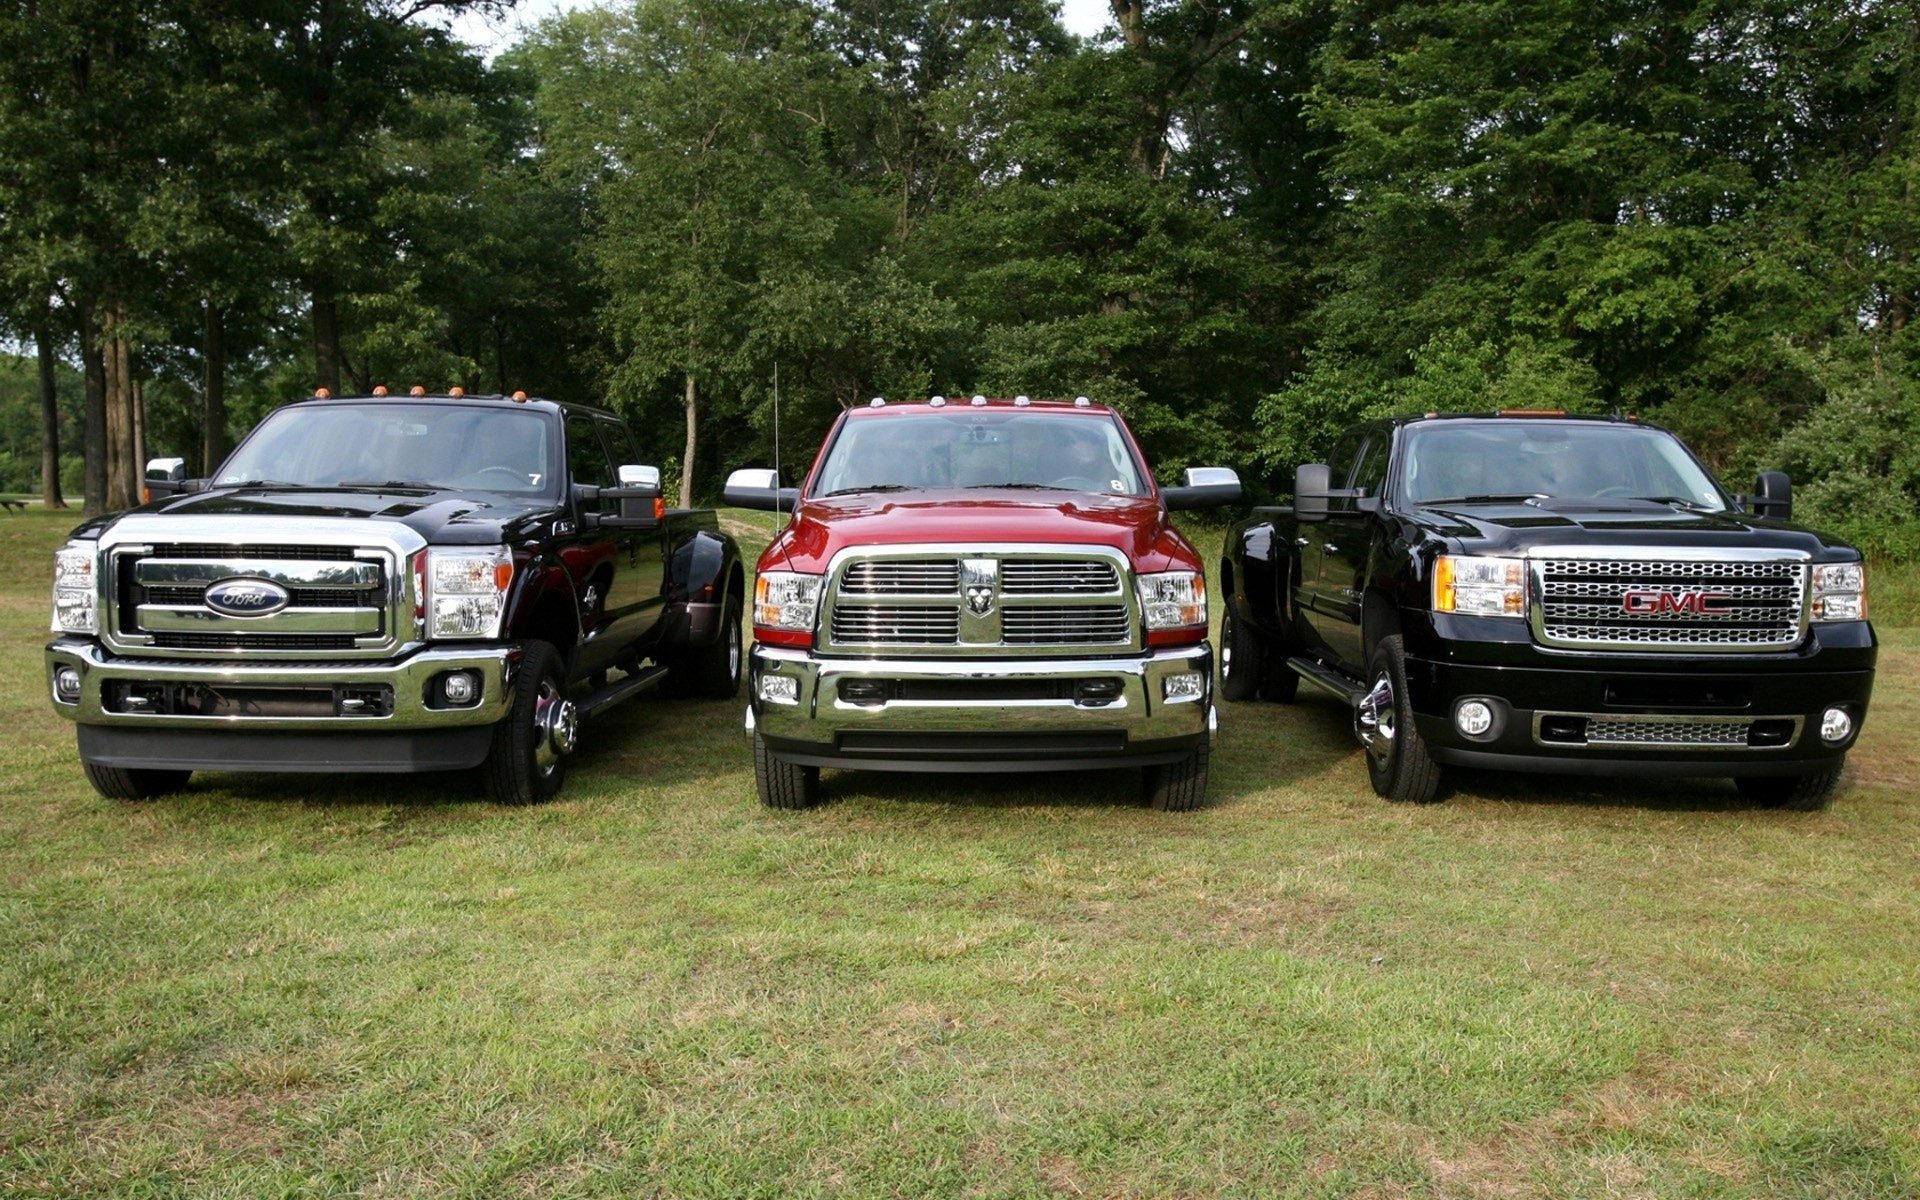 Cars Ford Gmc Dodge Ram Pickup Trucks Wallpaper